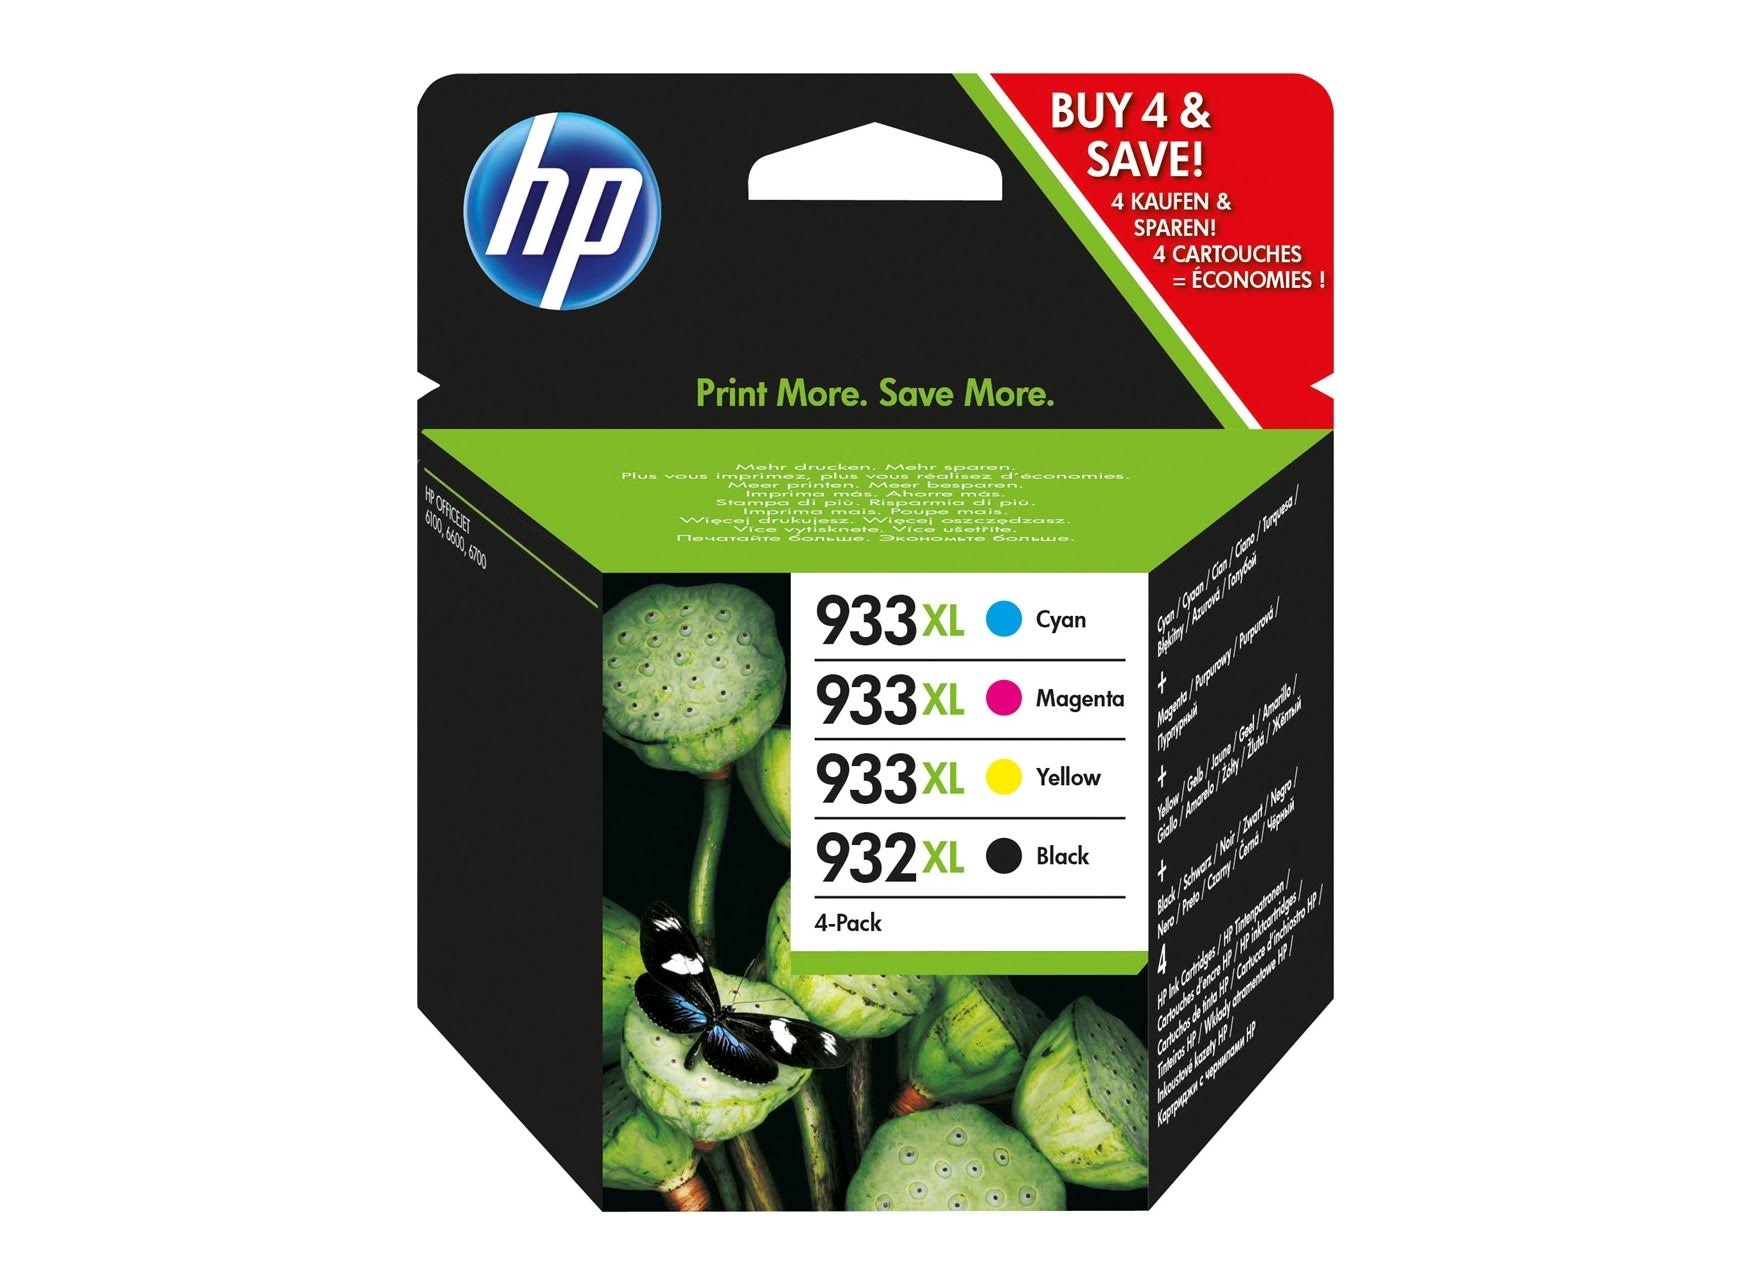 HP 932XL & 933XL Printer Ink Cartridge - 4 Pack